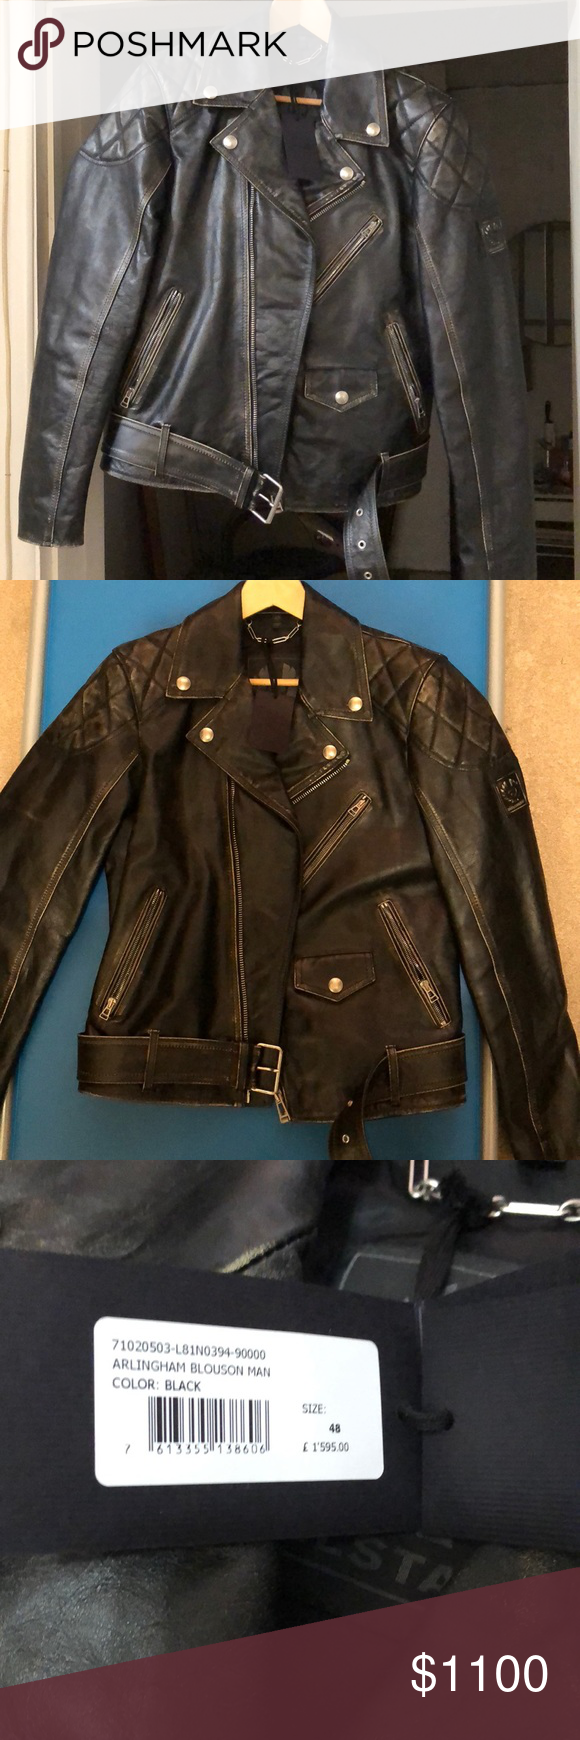 6b3abda985 Belfast Arlingham Blouson Man Leather Biker Jacket Brand new with tags! Belfast  leather jacket.